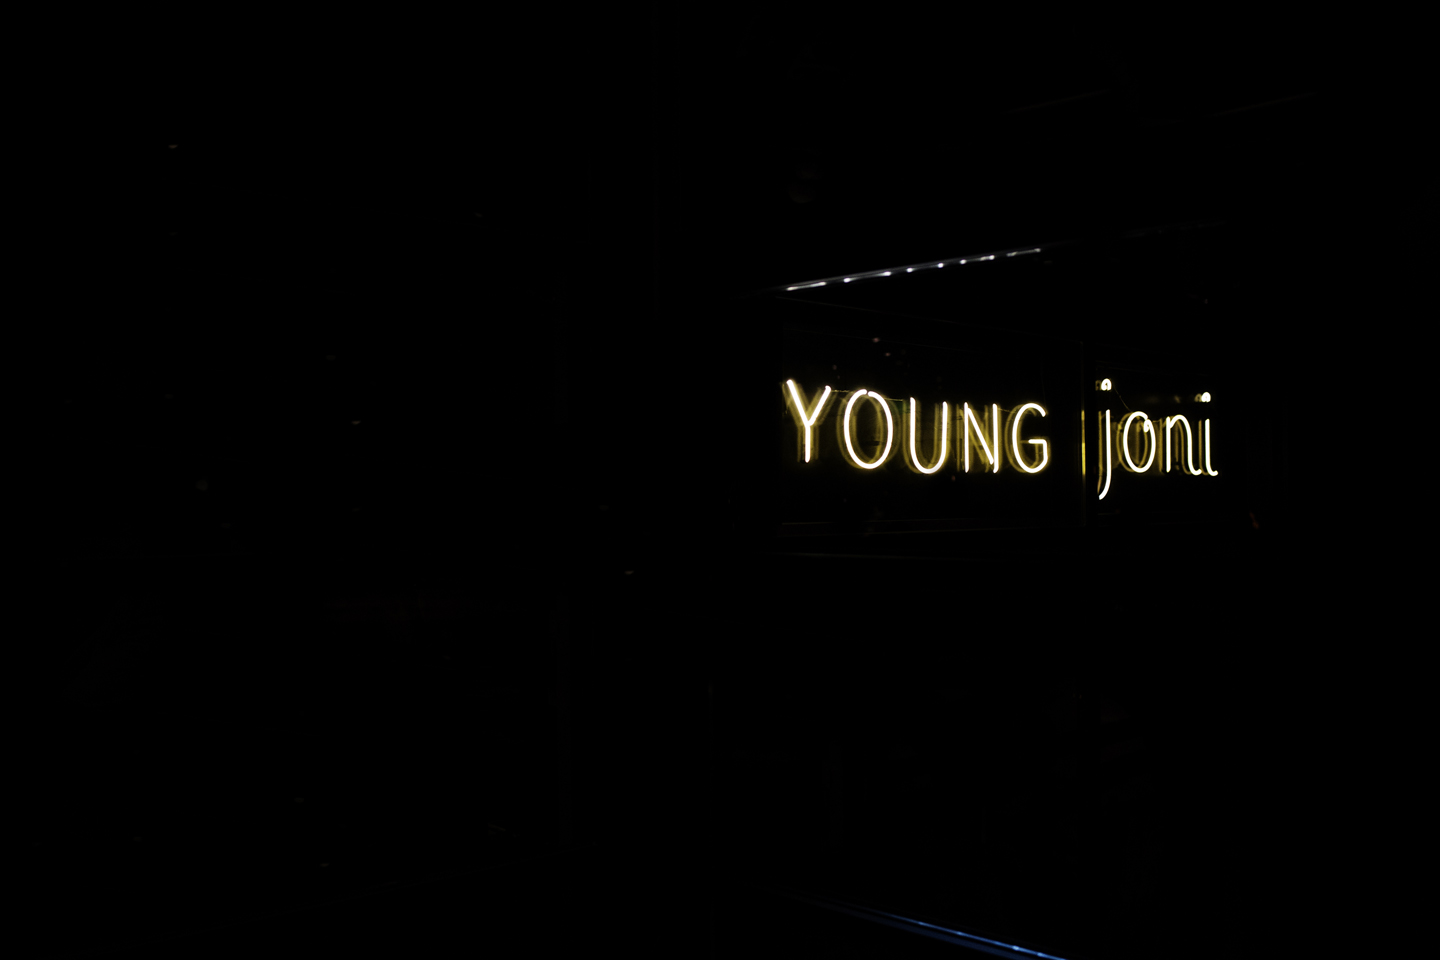 Young Joni neon sign | The Restaurant Project